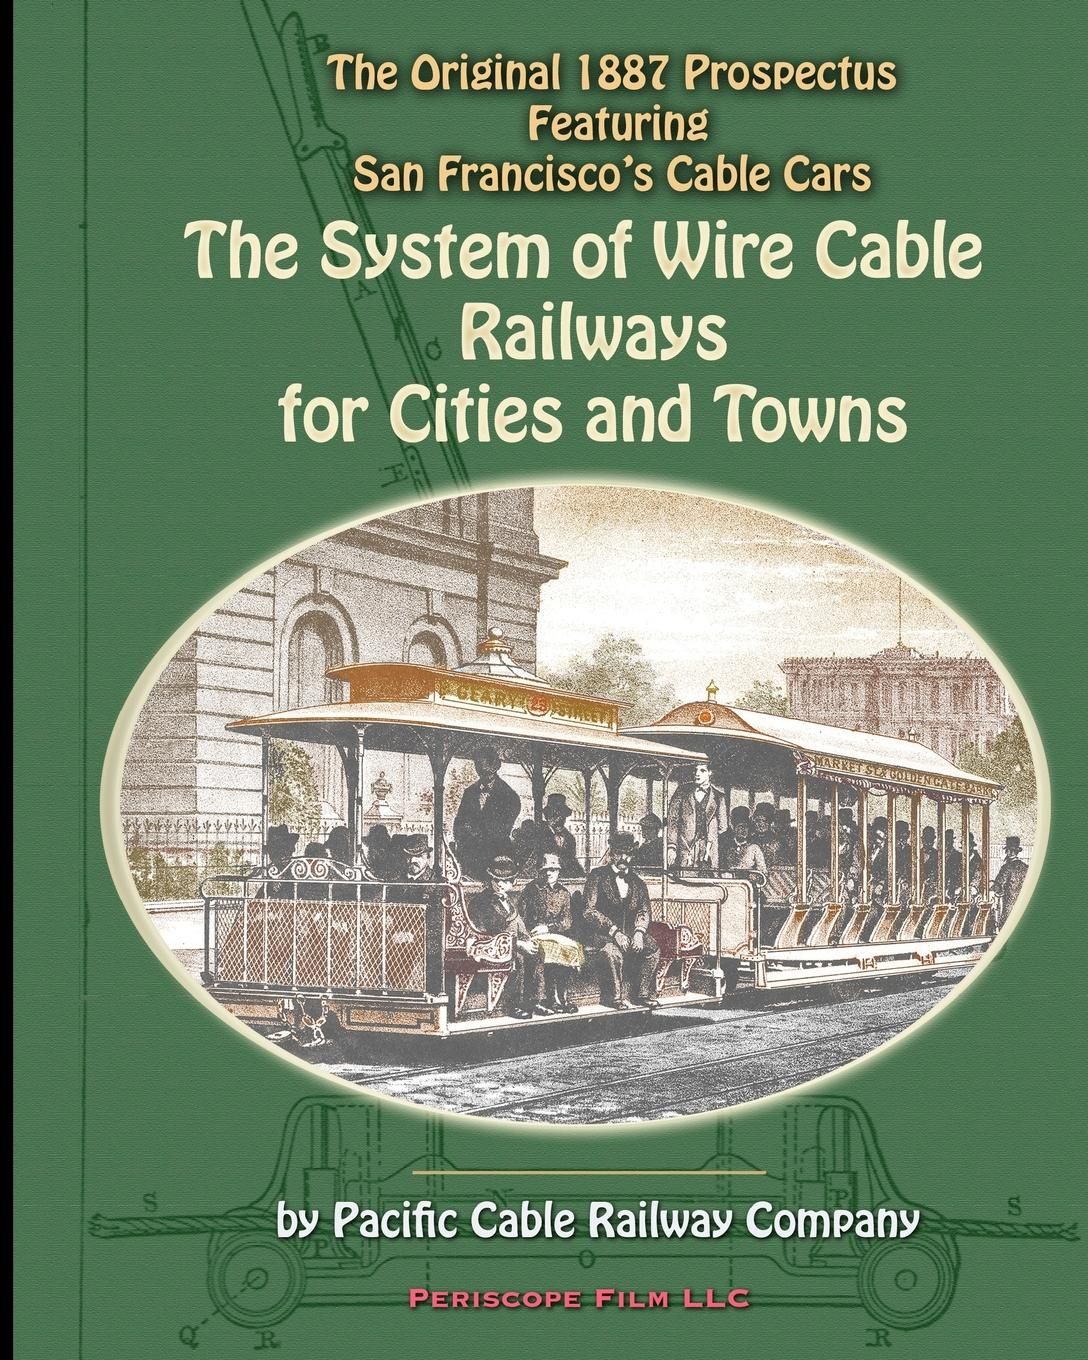 Pacific Cable Railway Company The System of Wire-Cable Railways for Cities and Towns. The Original 1887 Prospectus Featuring San Francisco's Cable Cars